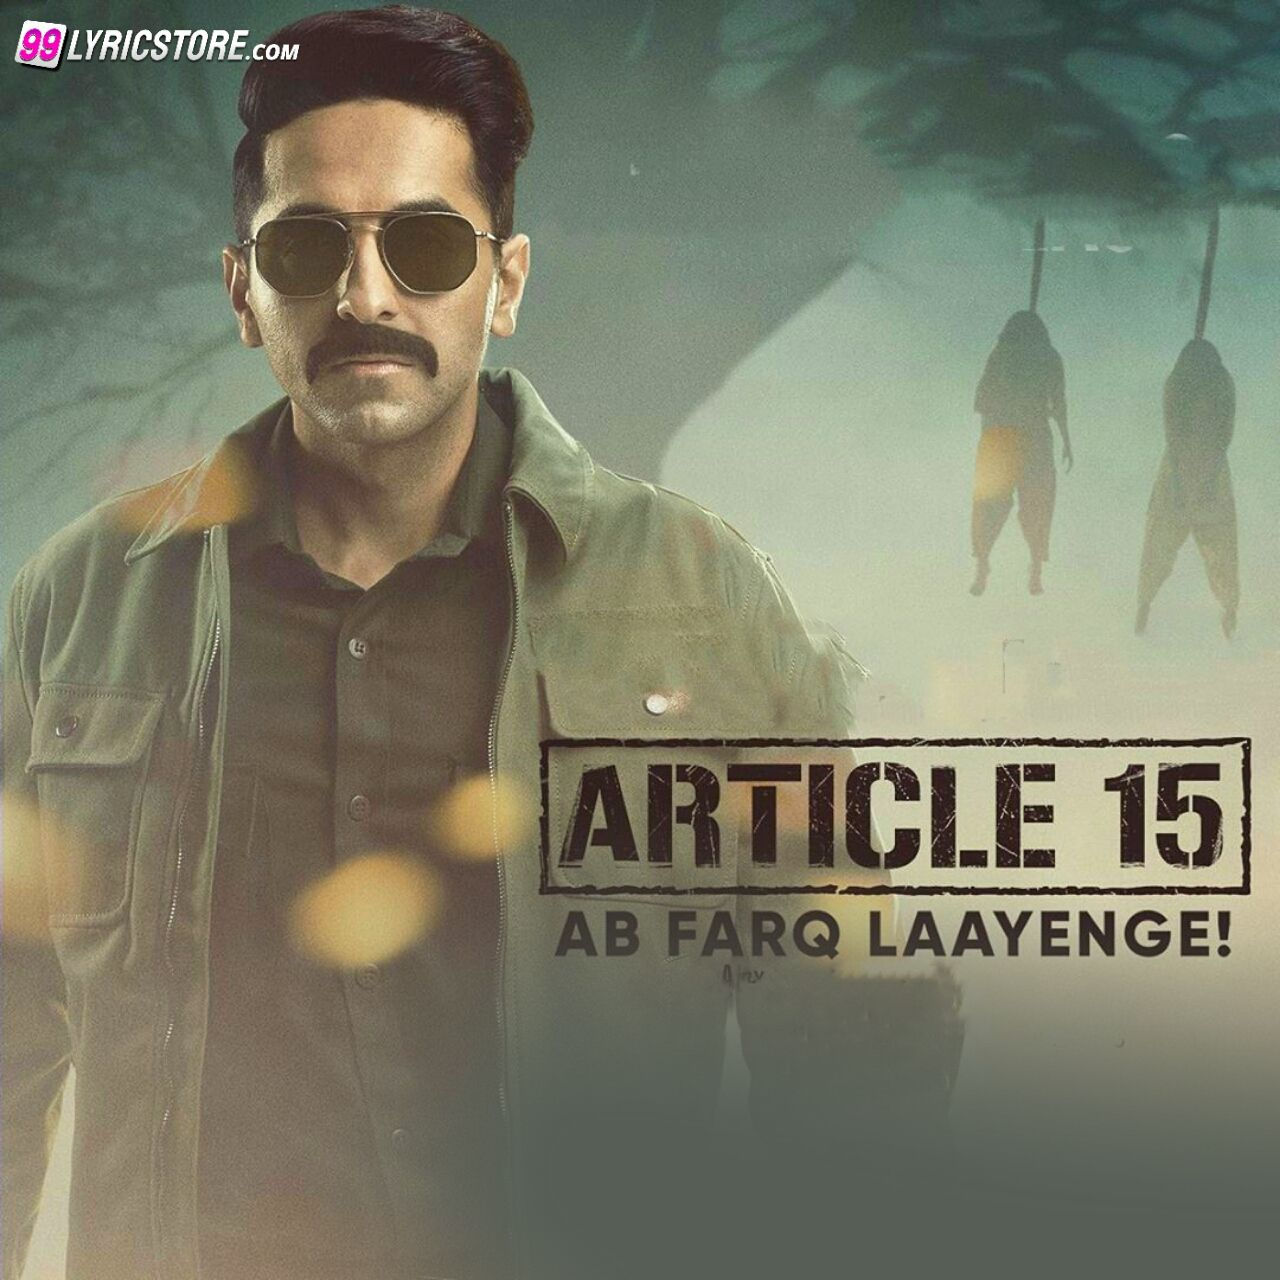 Latest Hindi song 'Intezari (Unplugged)' in the voice of 'Ayushmaan Khurrana' from the Movie 'Article 15'. Song music composed by 'Anurag Salakia' while song lyrics penned down by 'Shakeel Azmi'. Music label is Zee Music Company.